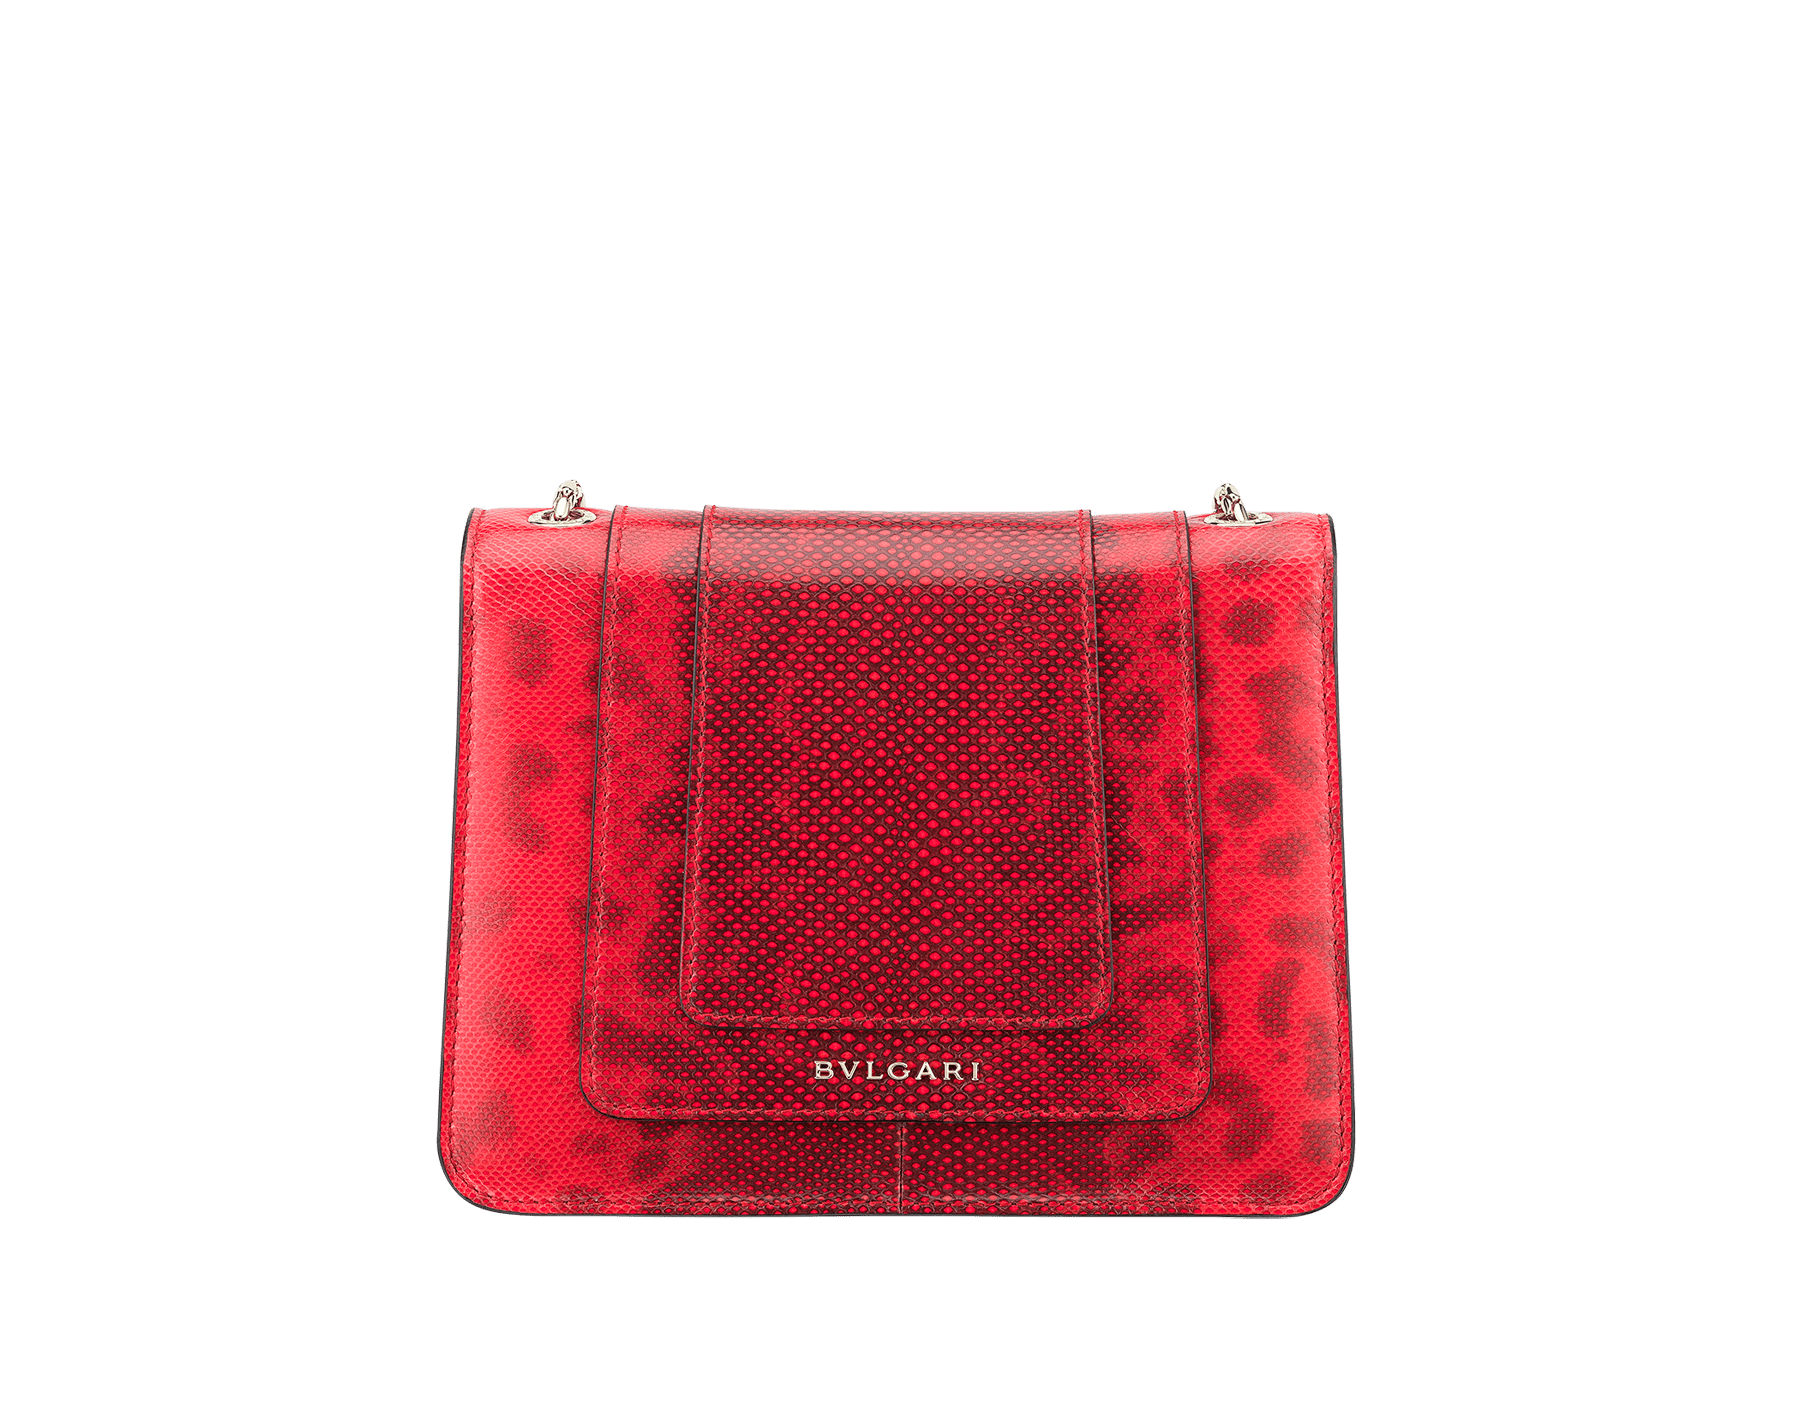 Serpenti Forever crossbody bag in sea star coral shiny karung skin. Snakehead closure in light gold plated brass decorated with black and white enamel, and green malachite eyes. 287911 image 3